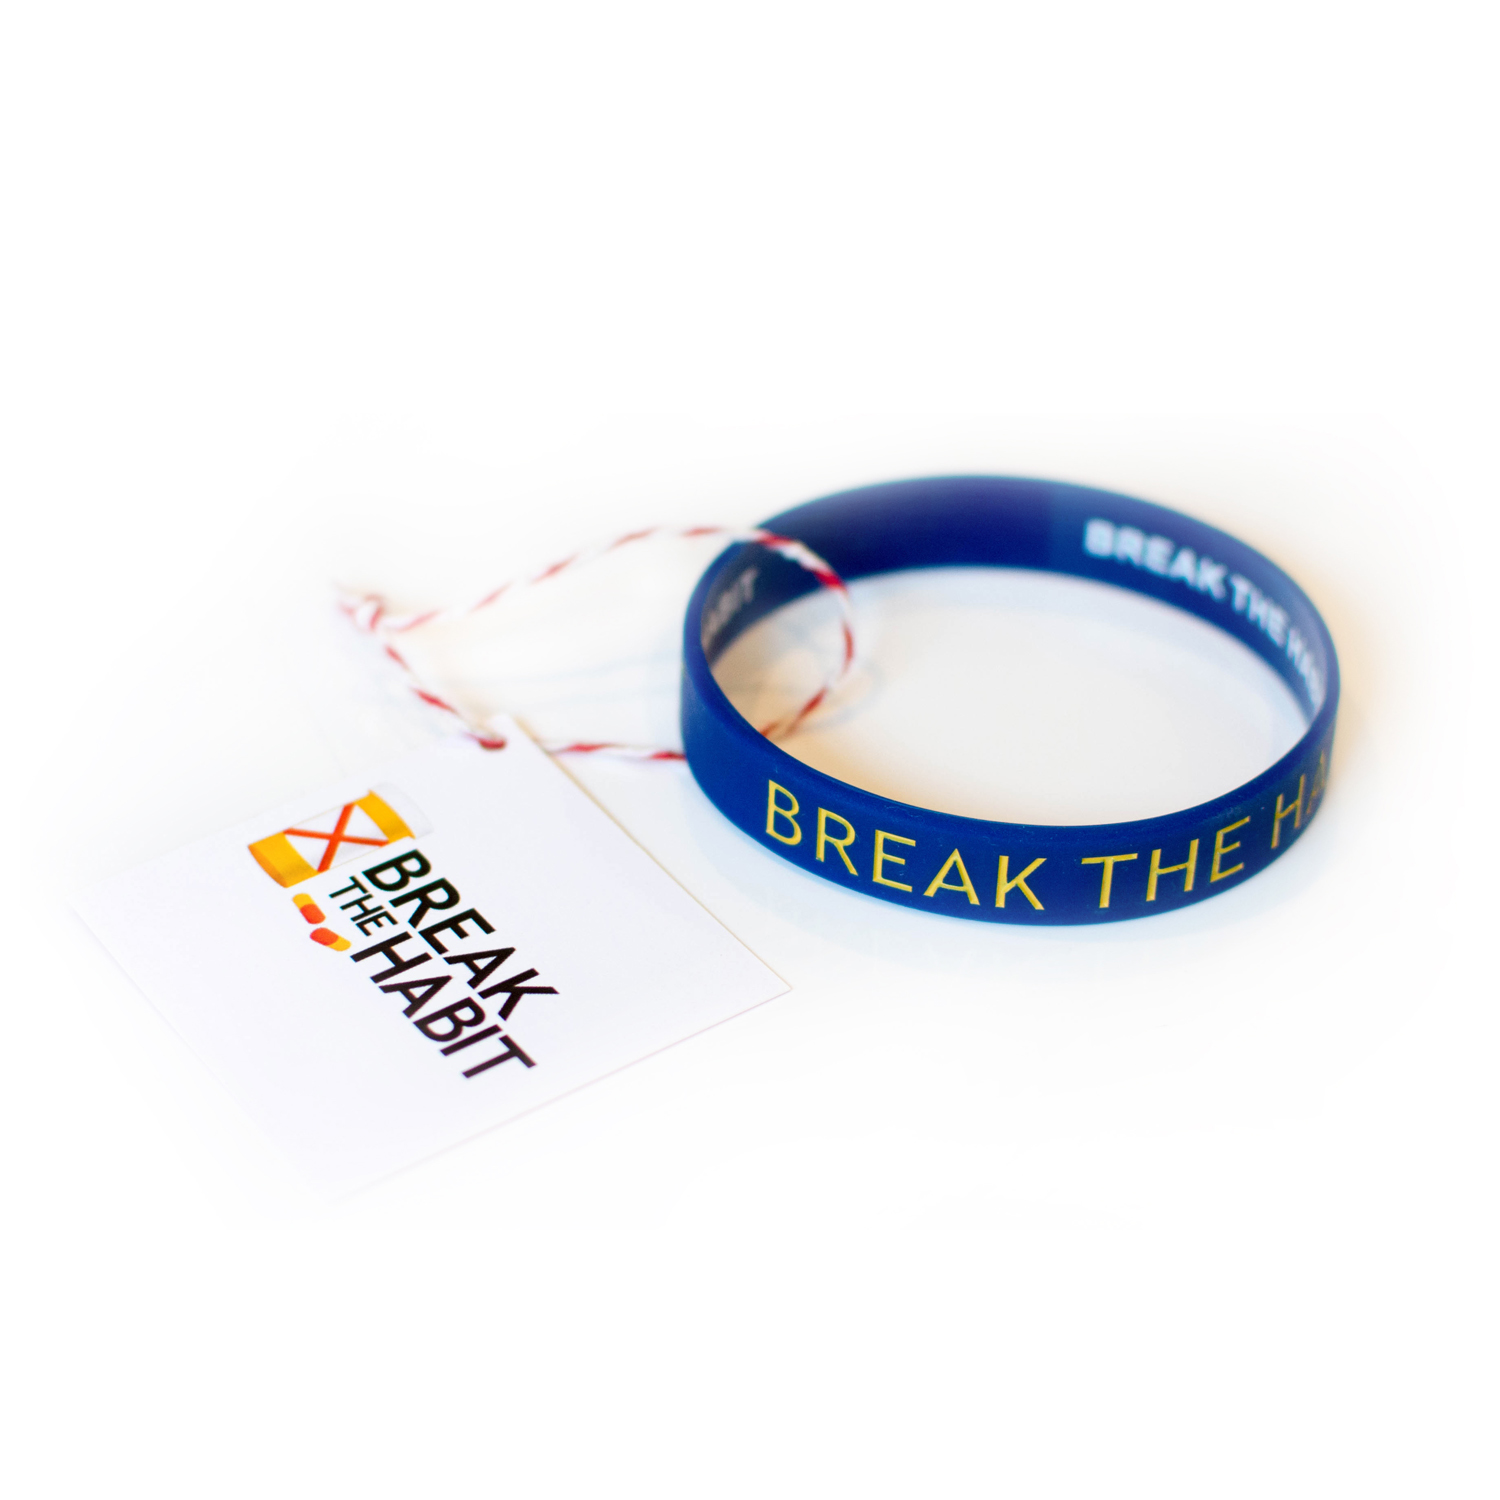 2018–2019: Edwards Middle School   6th graders in Charlestown, MA designed and sold bracelets to spread awareness about drug addiction in their community. Money raised from bracelet sales was donated to the  Charlestown Coalition .